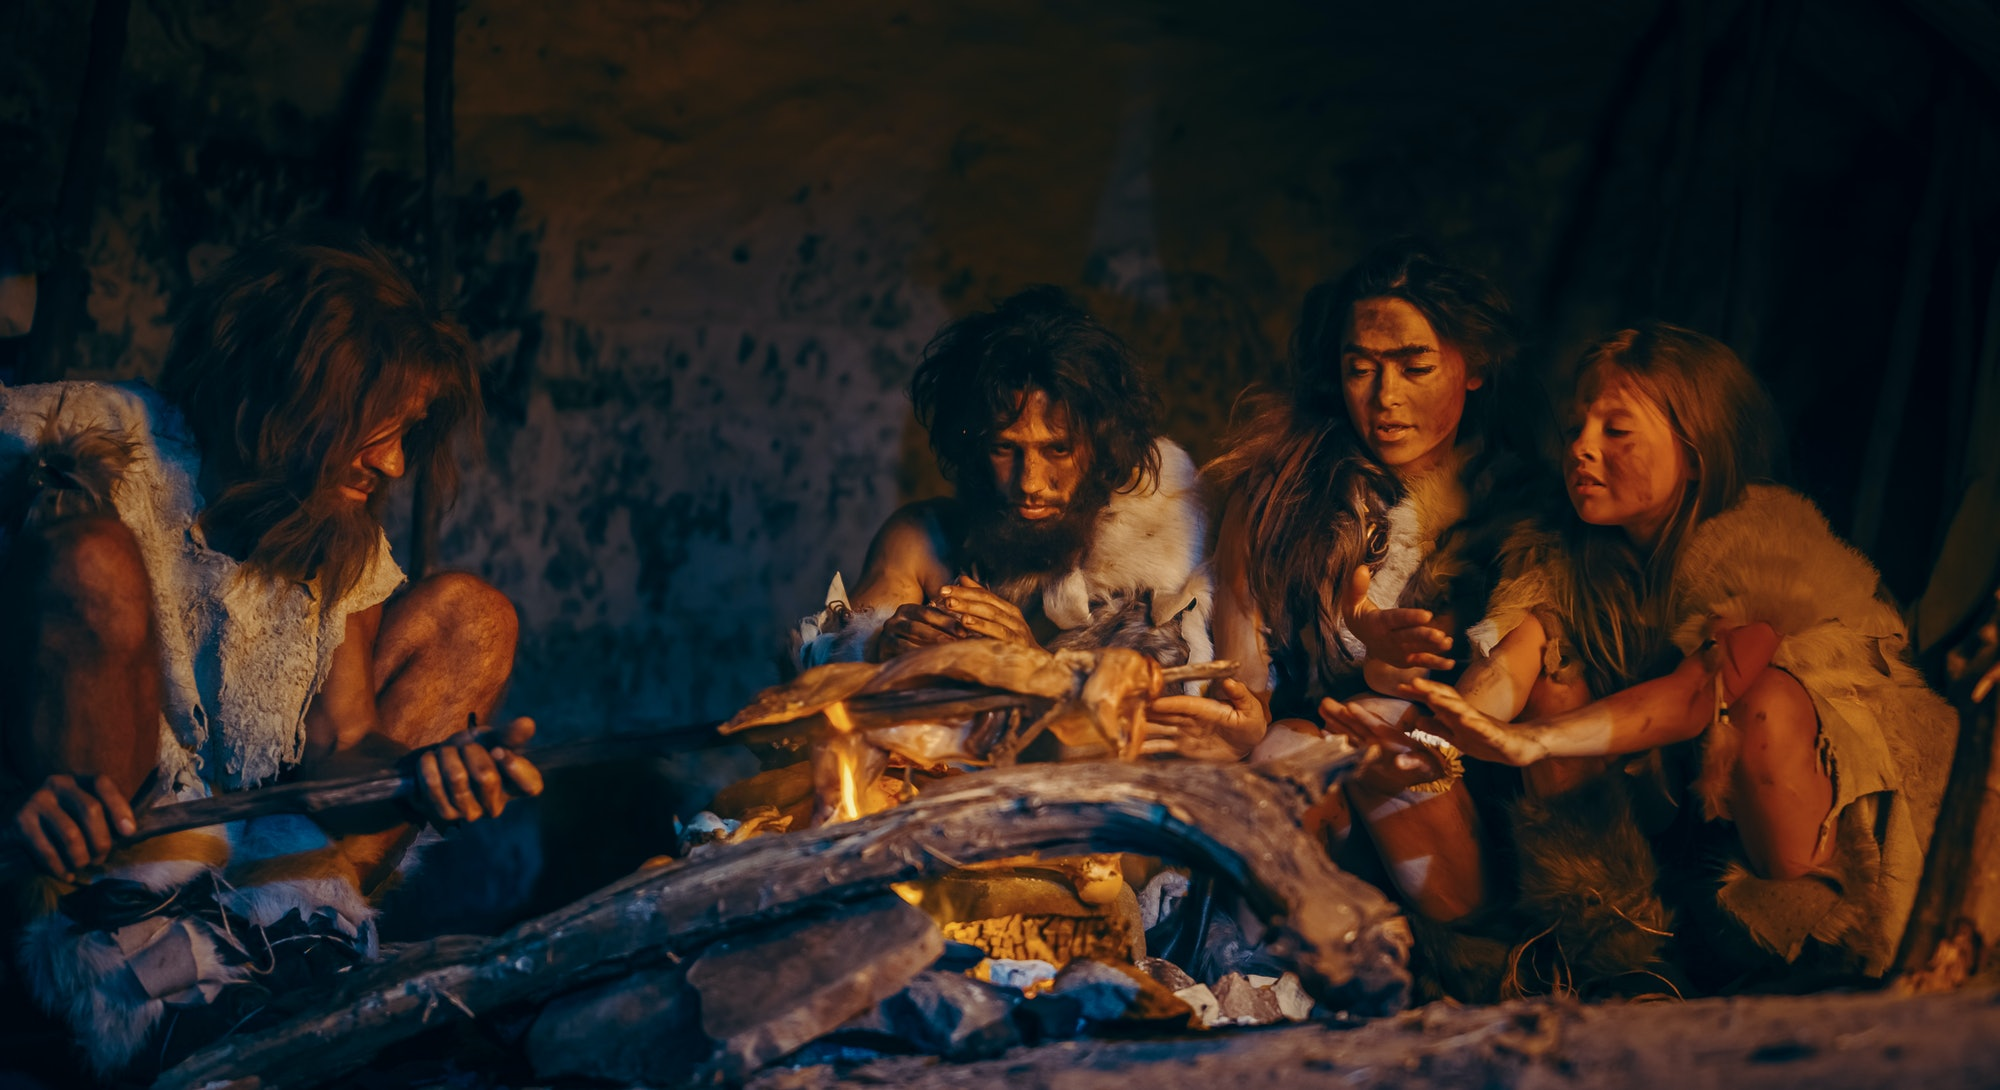 Neanderthal or Homo Sapiens Family Cooking Animal Meat over Bonfire and then Eating it. Tribe of Prehistoric Hunter-Gatherers Wearing Animal Skins Grilling and Eating Meat in Cave at Night